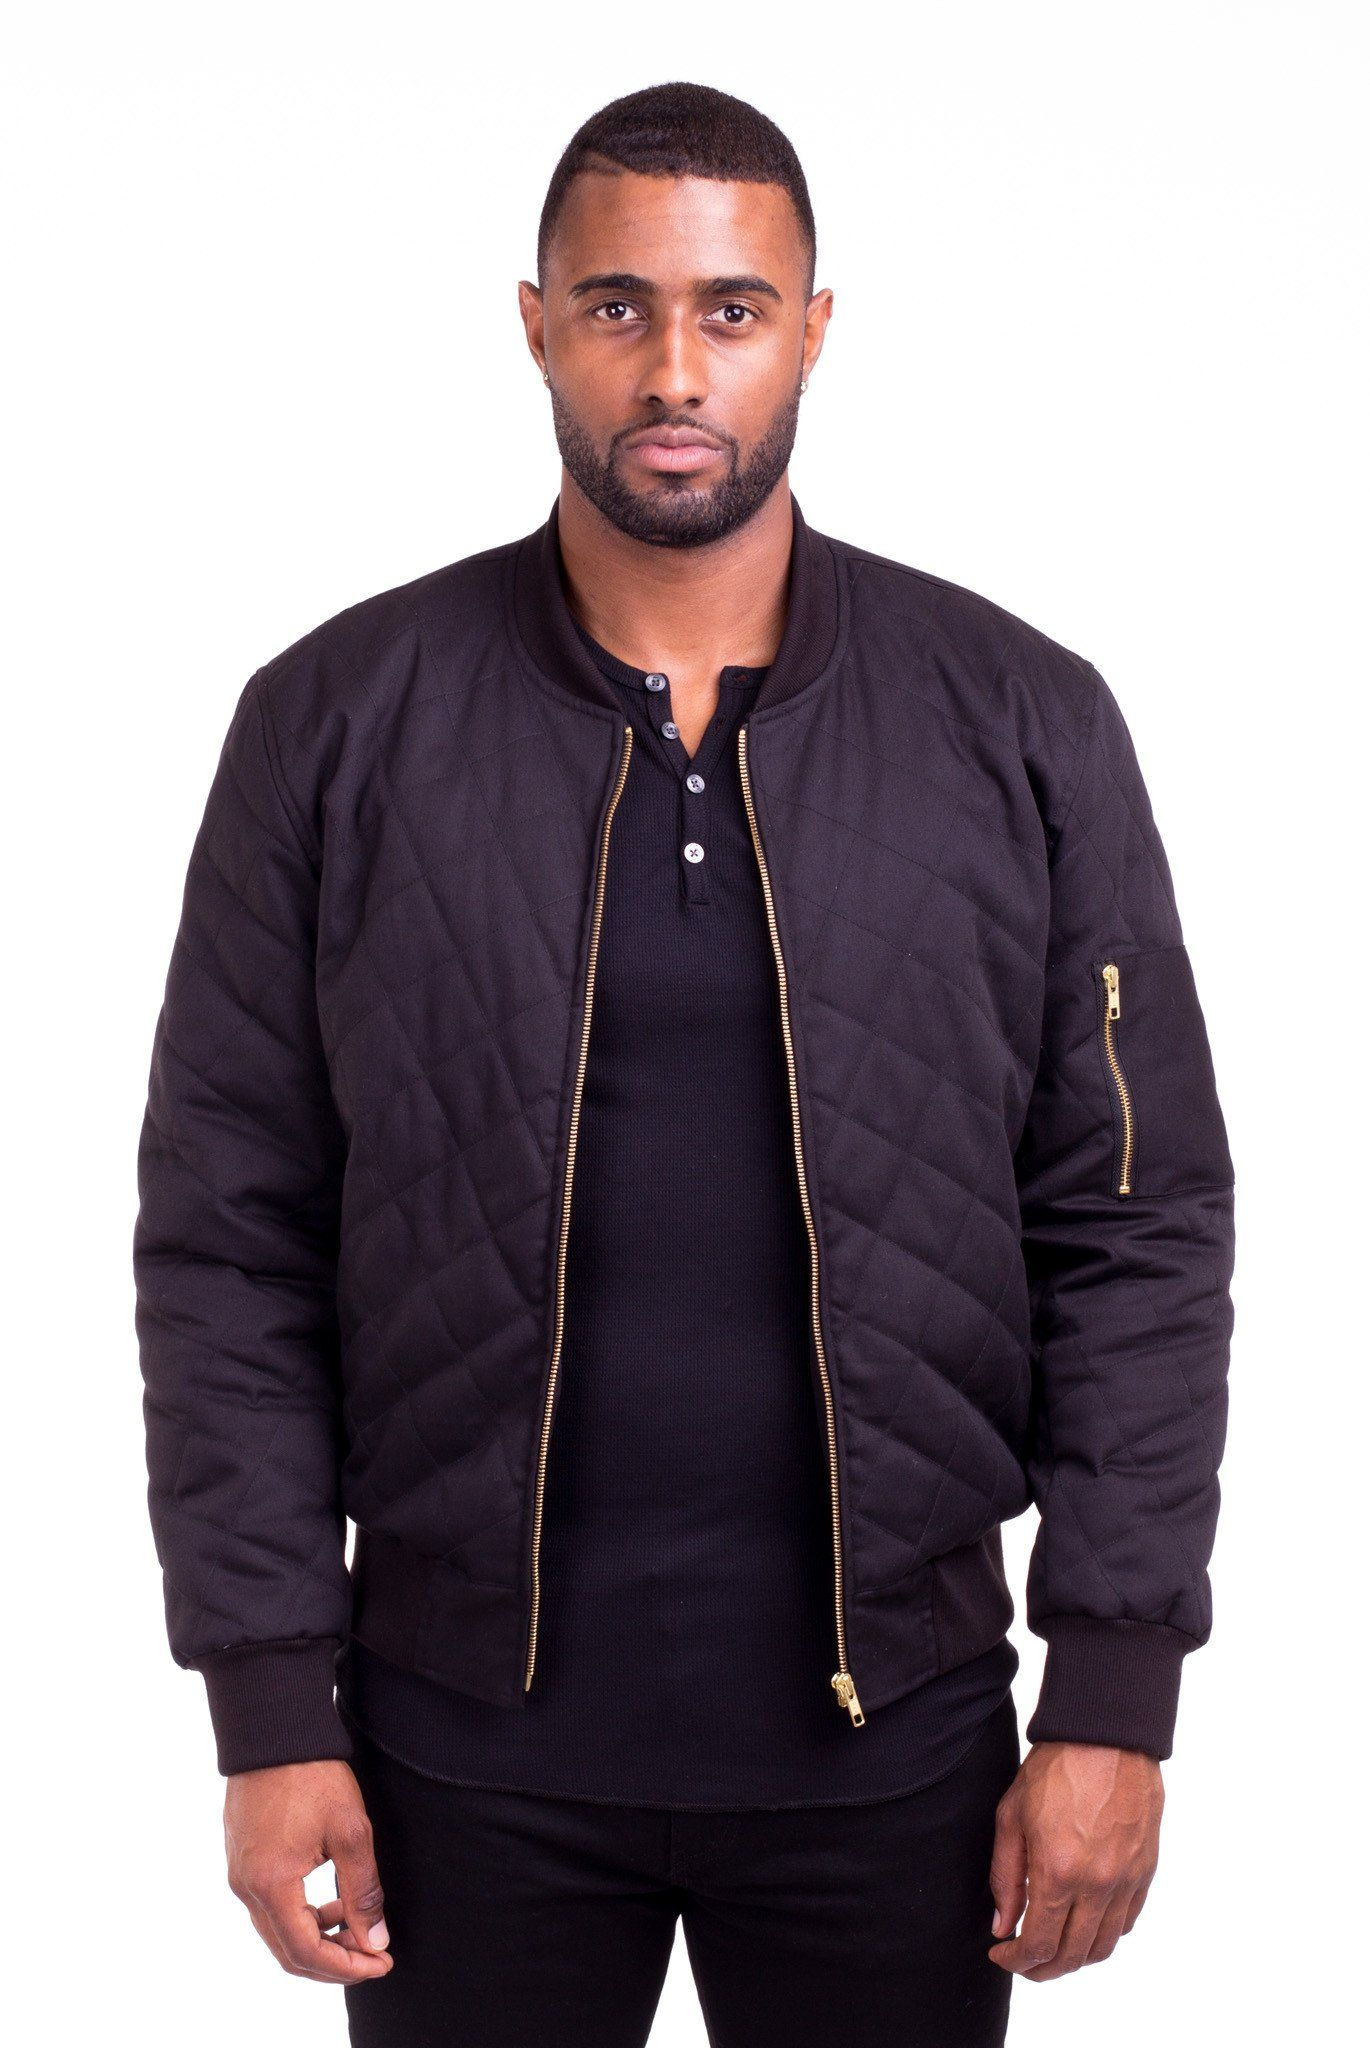 ACE BLACK QUILTED BOMBER JACKET | Poor Little Rich Boy Clothing